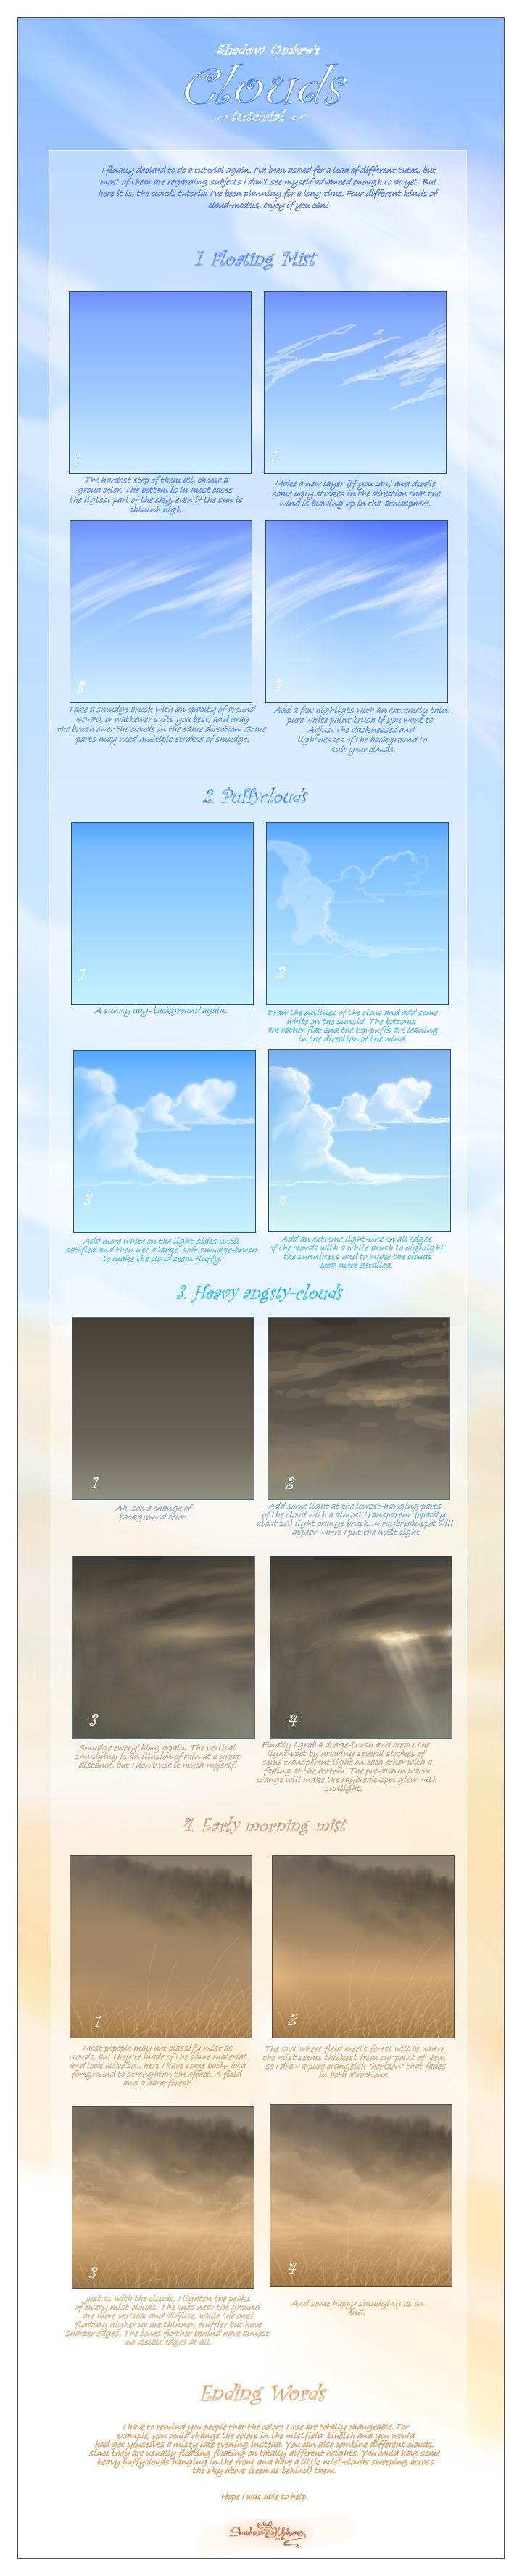 Clouds tutorial by MinnaSundberg.deviantart.com on @deviantART  Clouds are pretty straightforward, but I'm sure I regularly forget a few things. Anyway, another set of guidelines for painting.